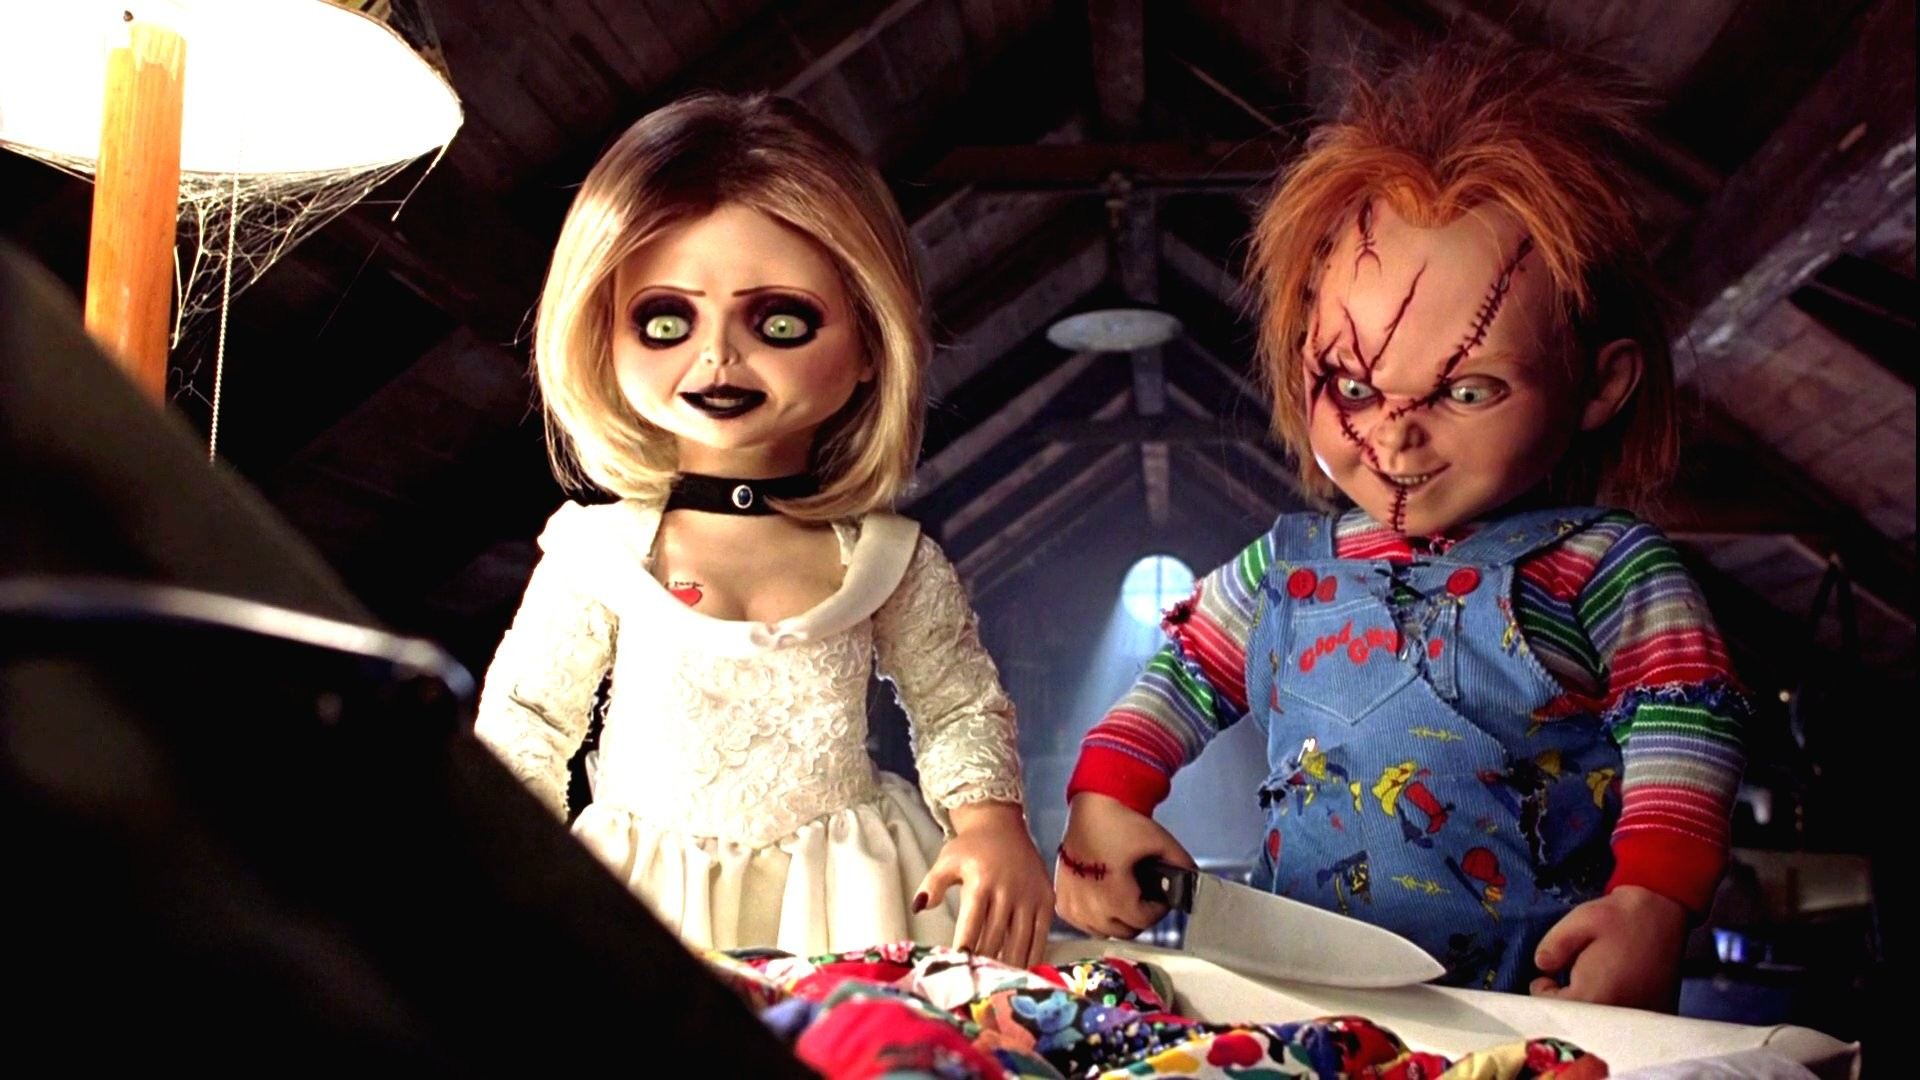 1920x1080 CHILDS PLAY chucky dark horror creepy scary (4) wallpaper |  |  235494 | WallpaperUP